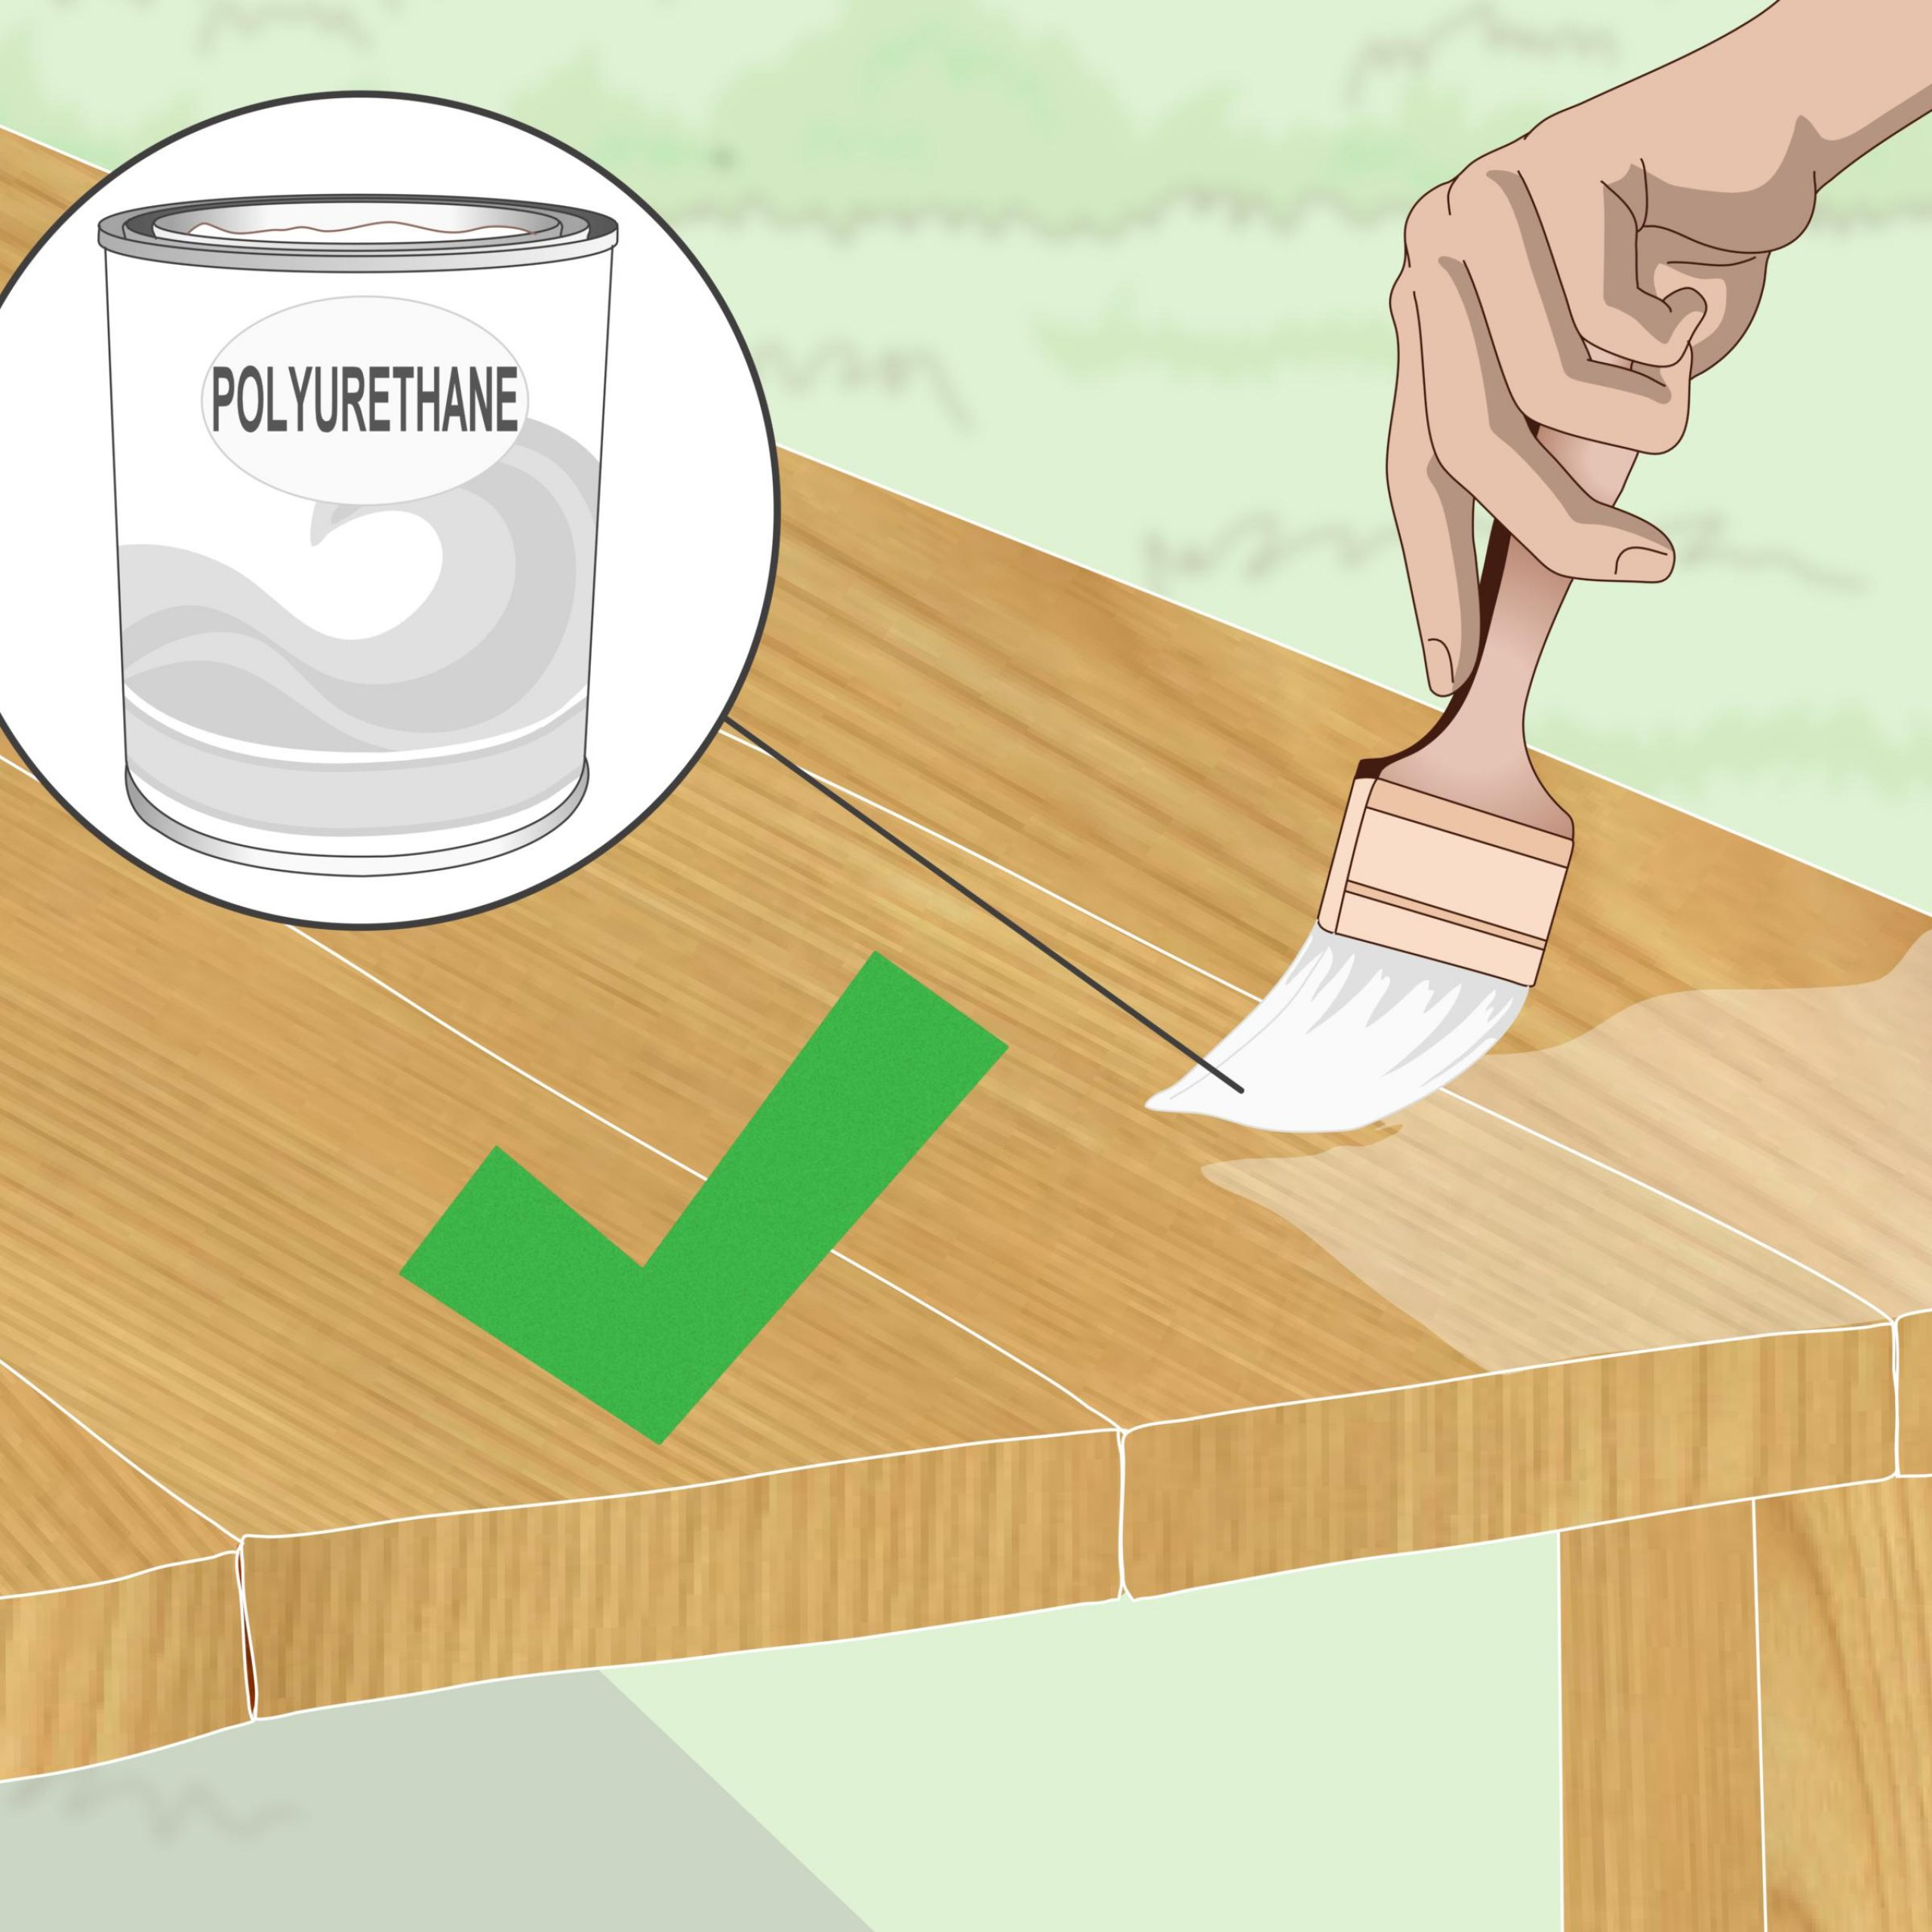 How To Stain Teak Furniture: 12 Steps (With Pictures) – Wikihow Intended For 2 Person Light Teak Oil Wood Outdoor Swings (View 22 of 25)